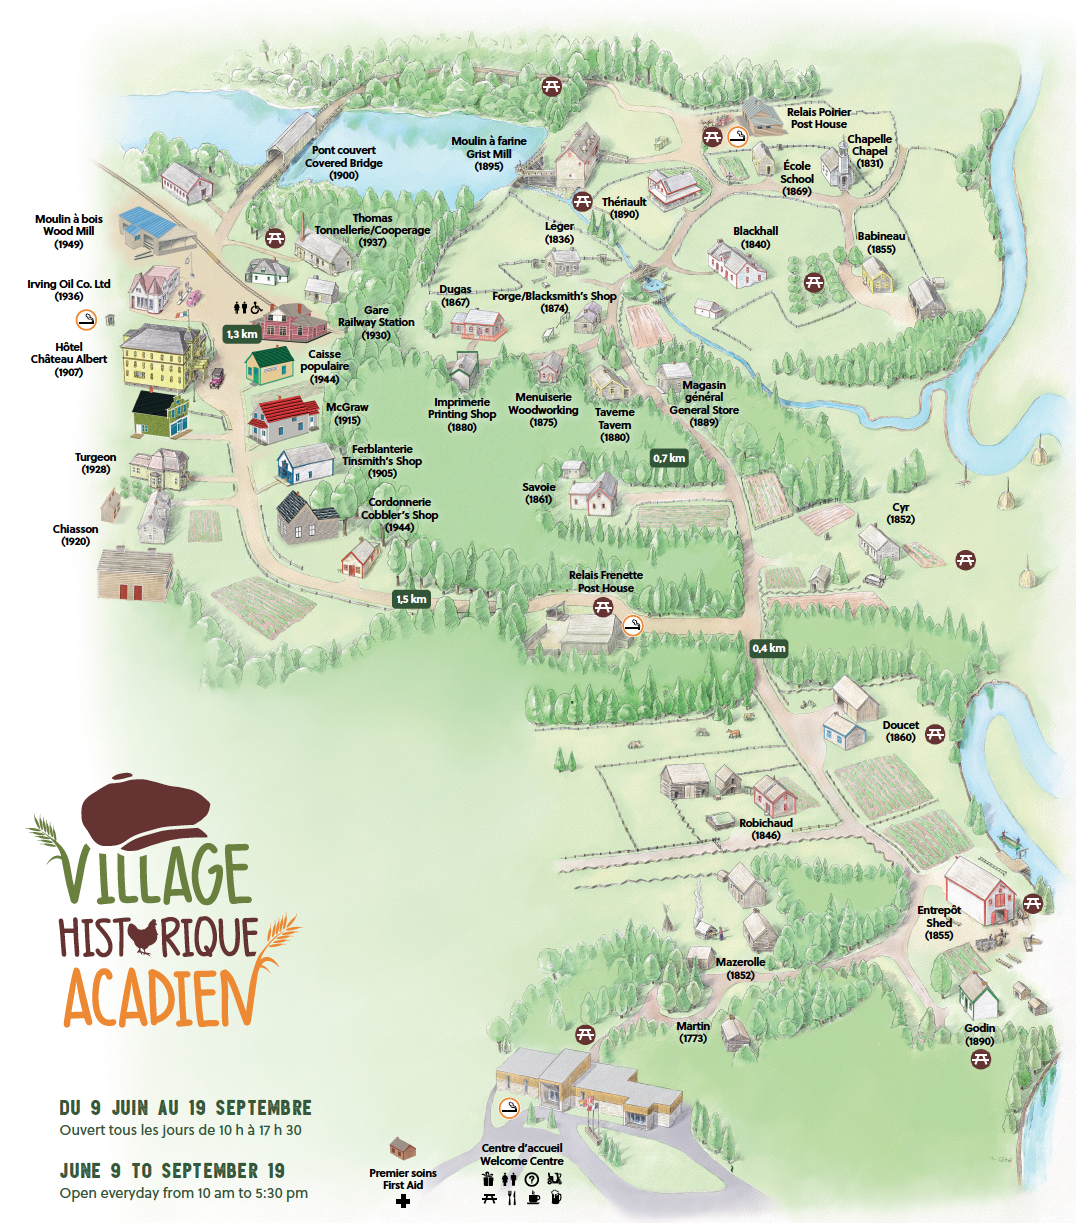 Village historique acadien Map